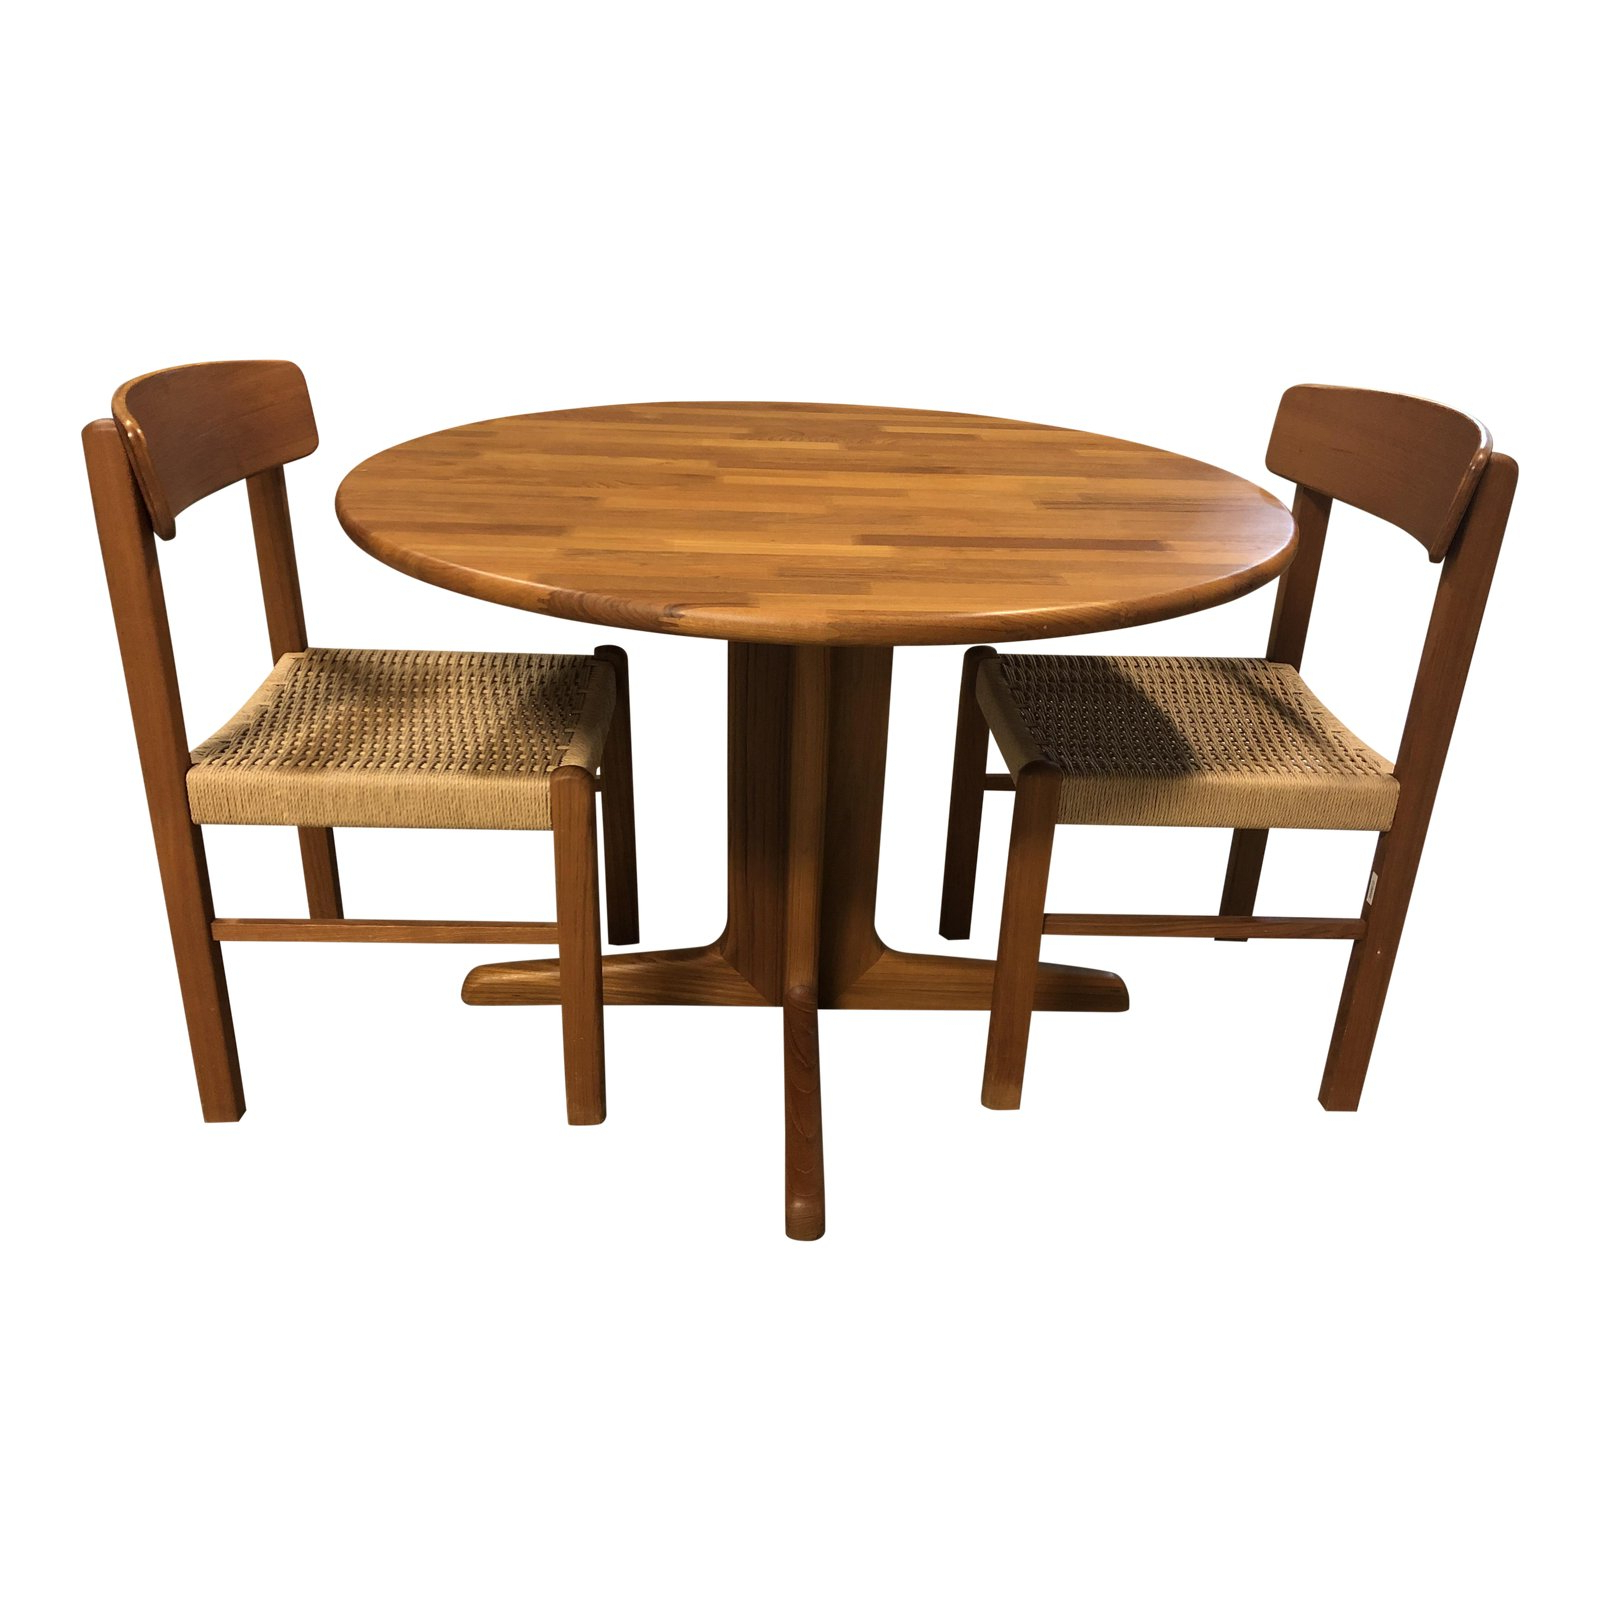 Sun Cabinet – Wood Round Table + Two Side Chairs Original Pertaining To Best And Newest Linden Round Pedestal Dining Tables (View 14 of 25)